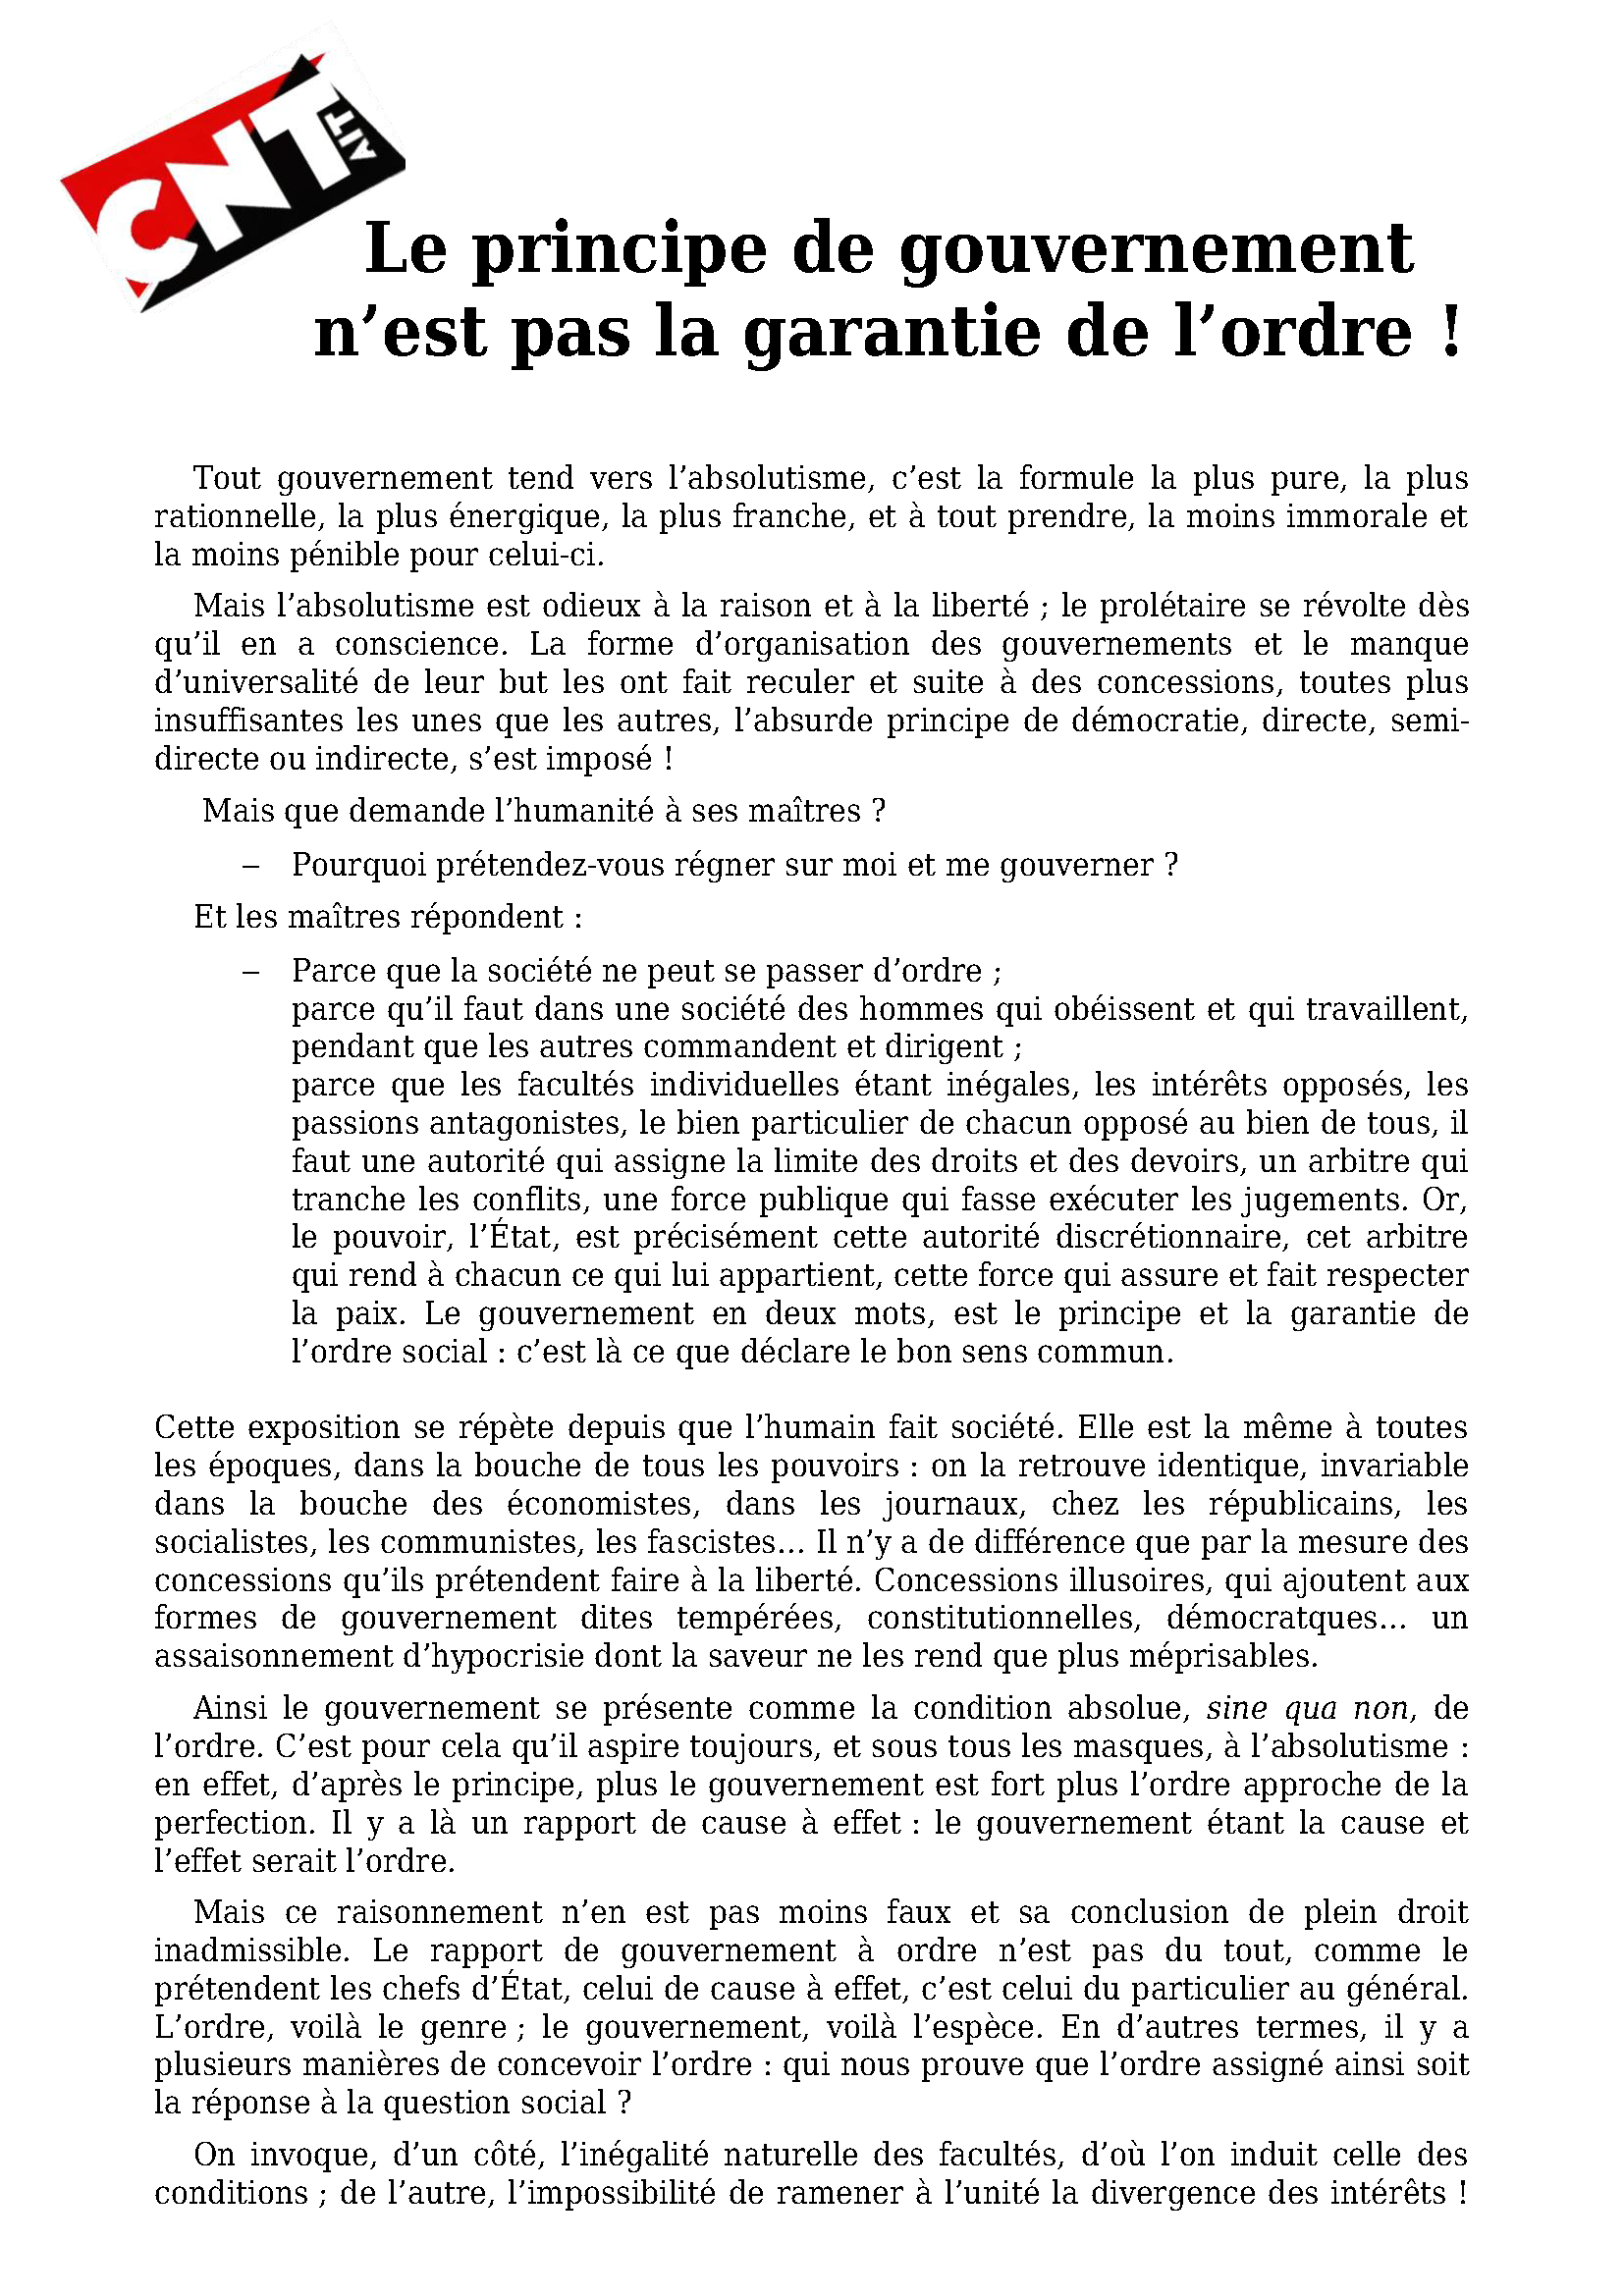 Télécharger le tract recto/verso